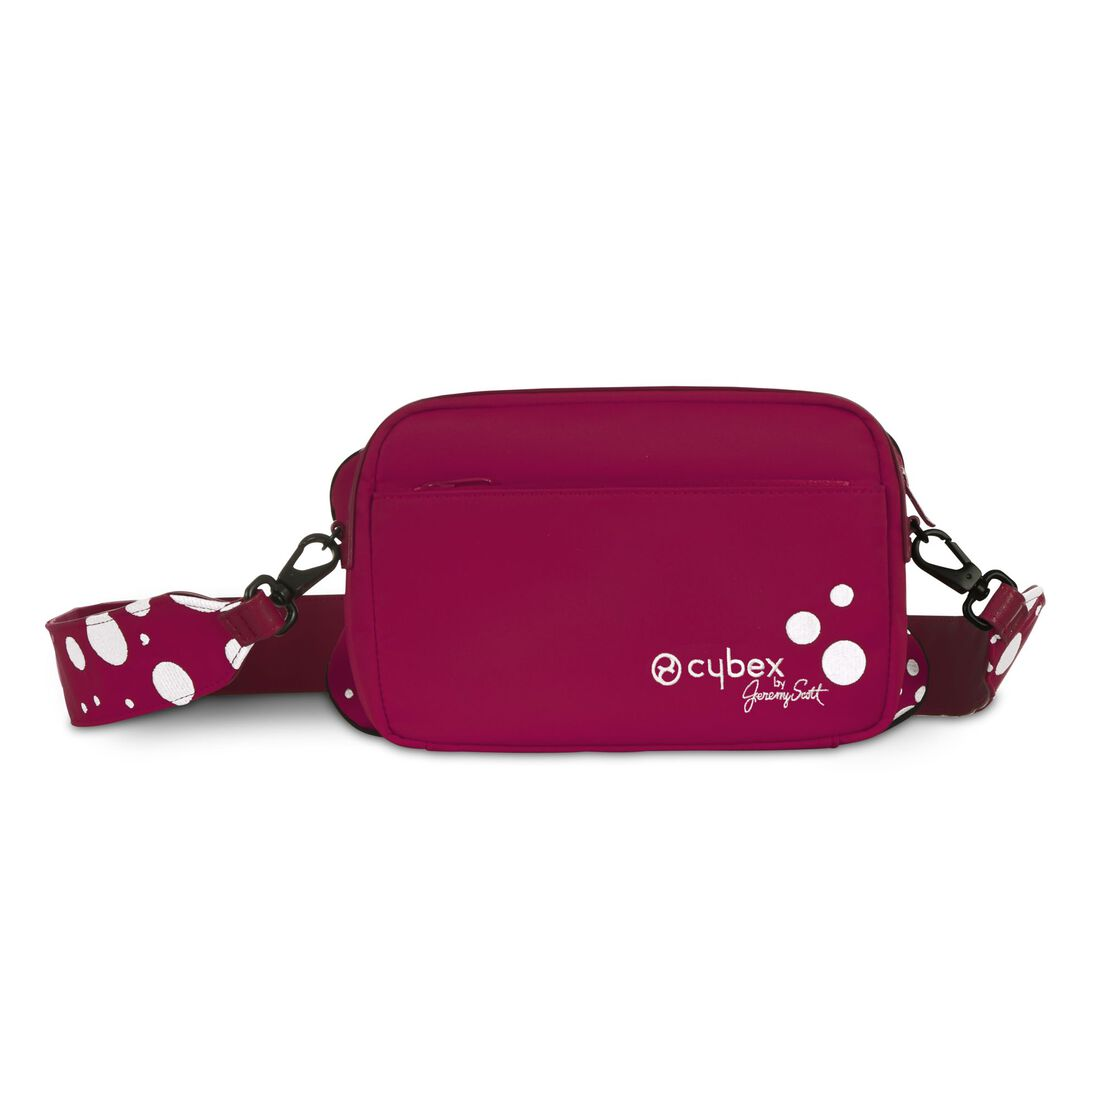 CYBEX Essential Bag - Petticoat Red in Petticoat Red large image number 2